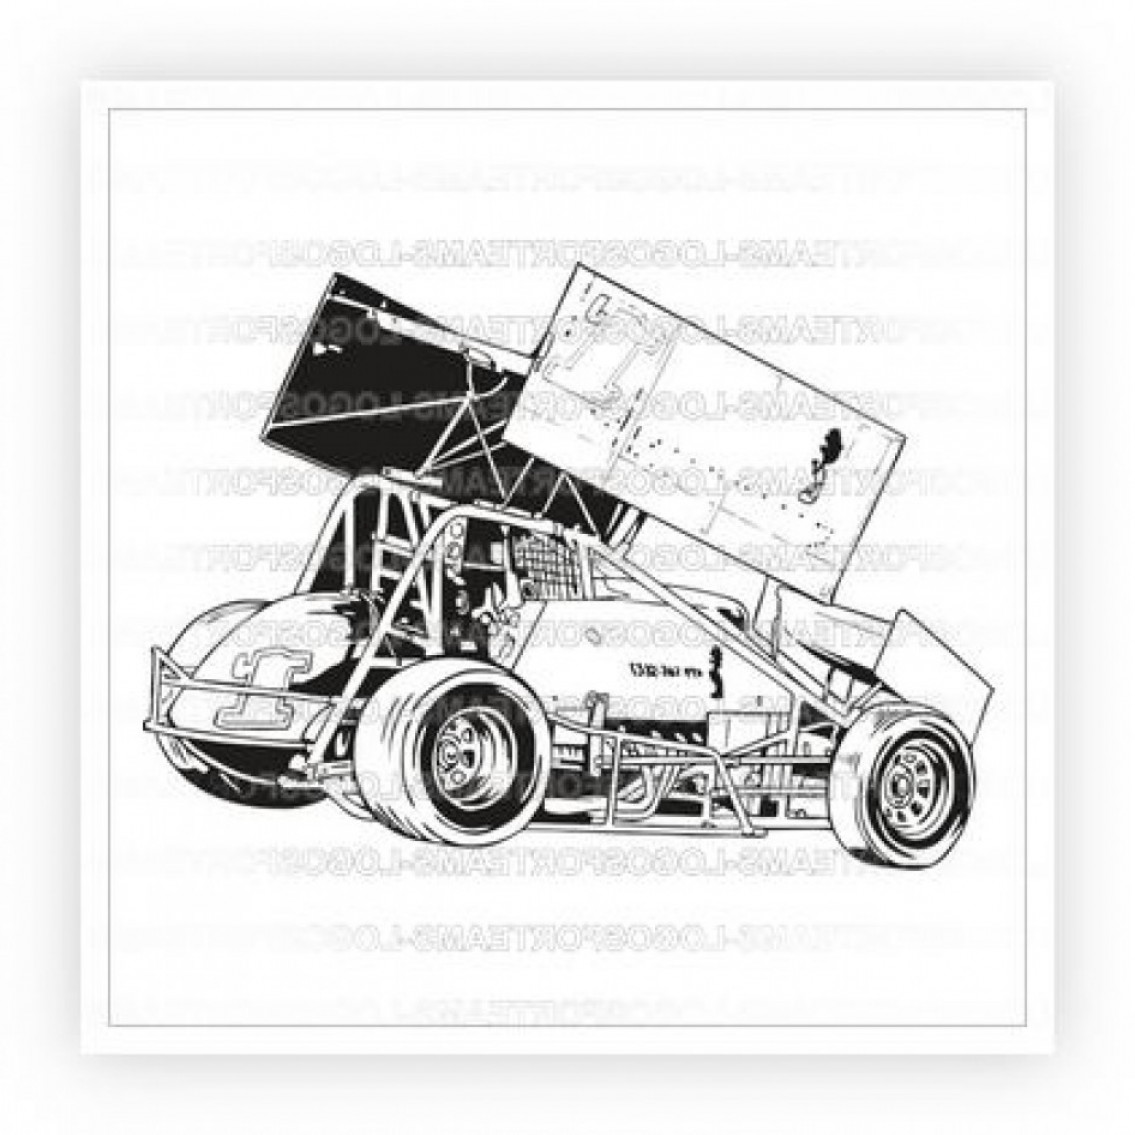 Black And White Vector Racing Graphics: Sports Logo Part Of Black White Sprint Car Race Racing Graphic In Vector Format